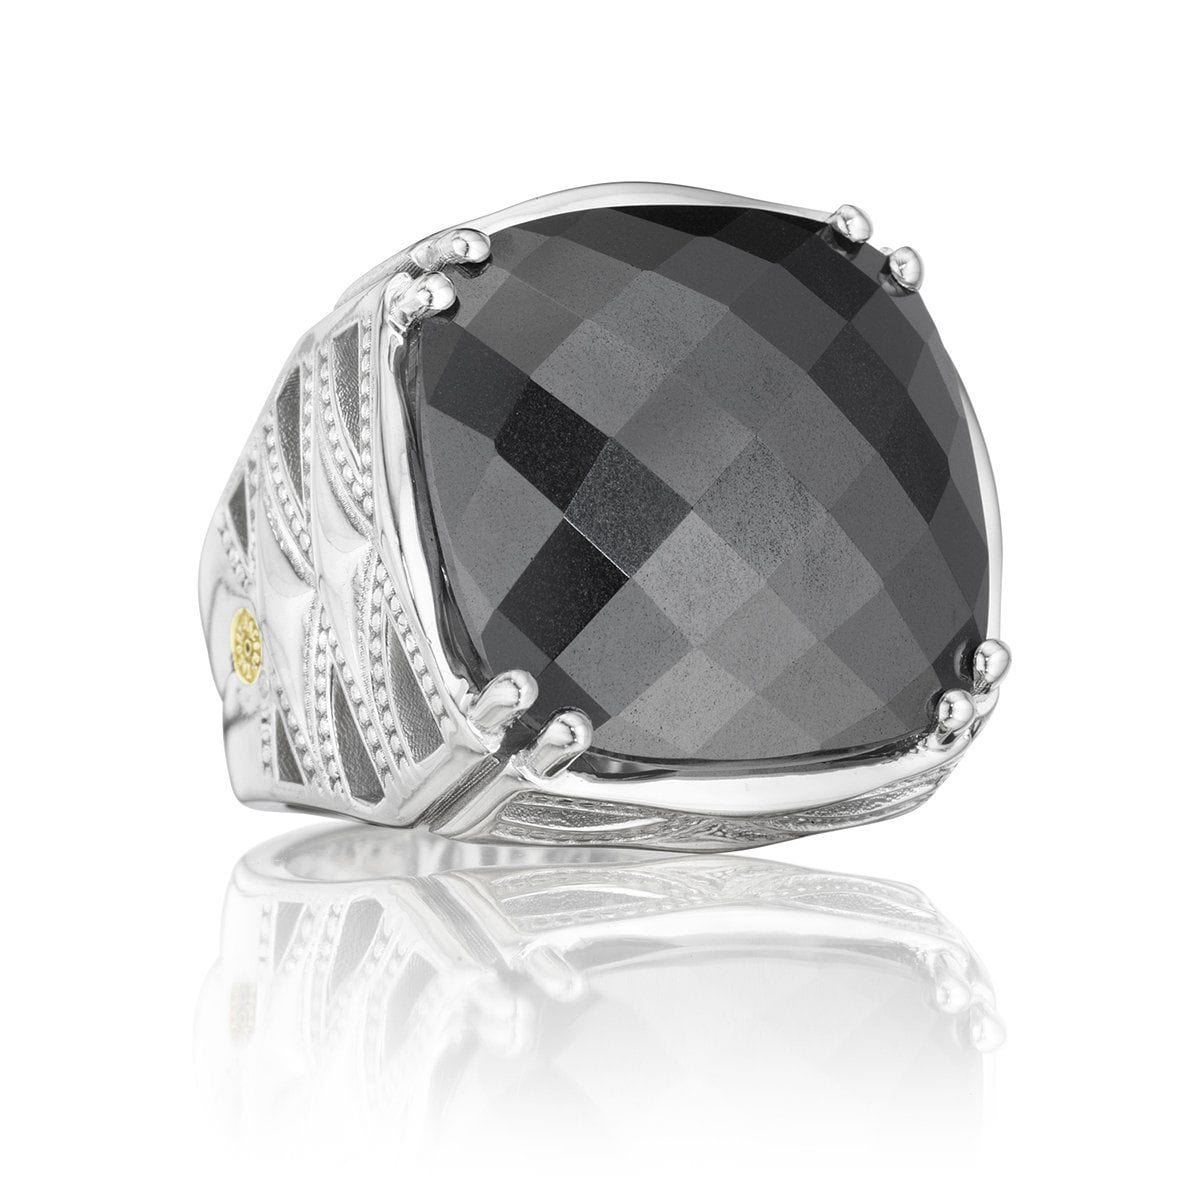 Silver Hematite Classic Rock Ring - SR13132-Tacori-Renee Taylor Gallery